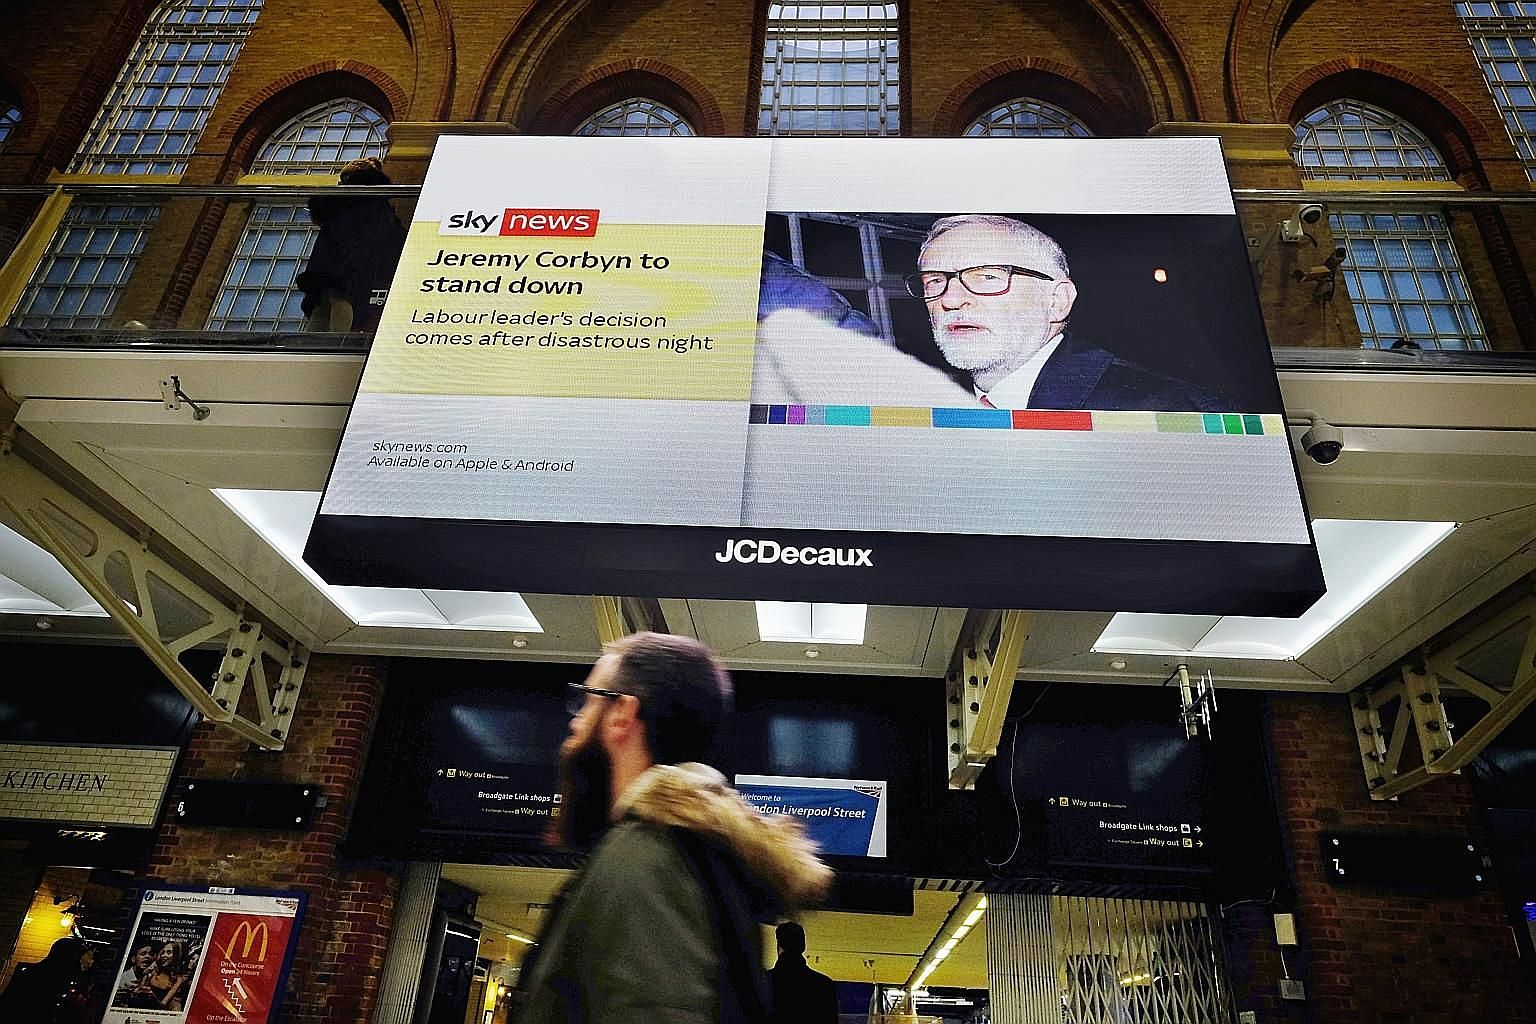 A broadcast of Labour leader Jeremy Corbyn's resignation in the wake of his party's loss in the British election last Friday. The polls provided many examples of how social media has further hollowed out what were already tired practices of political